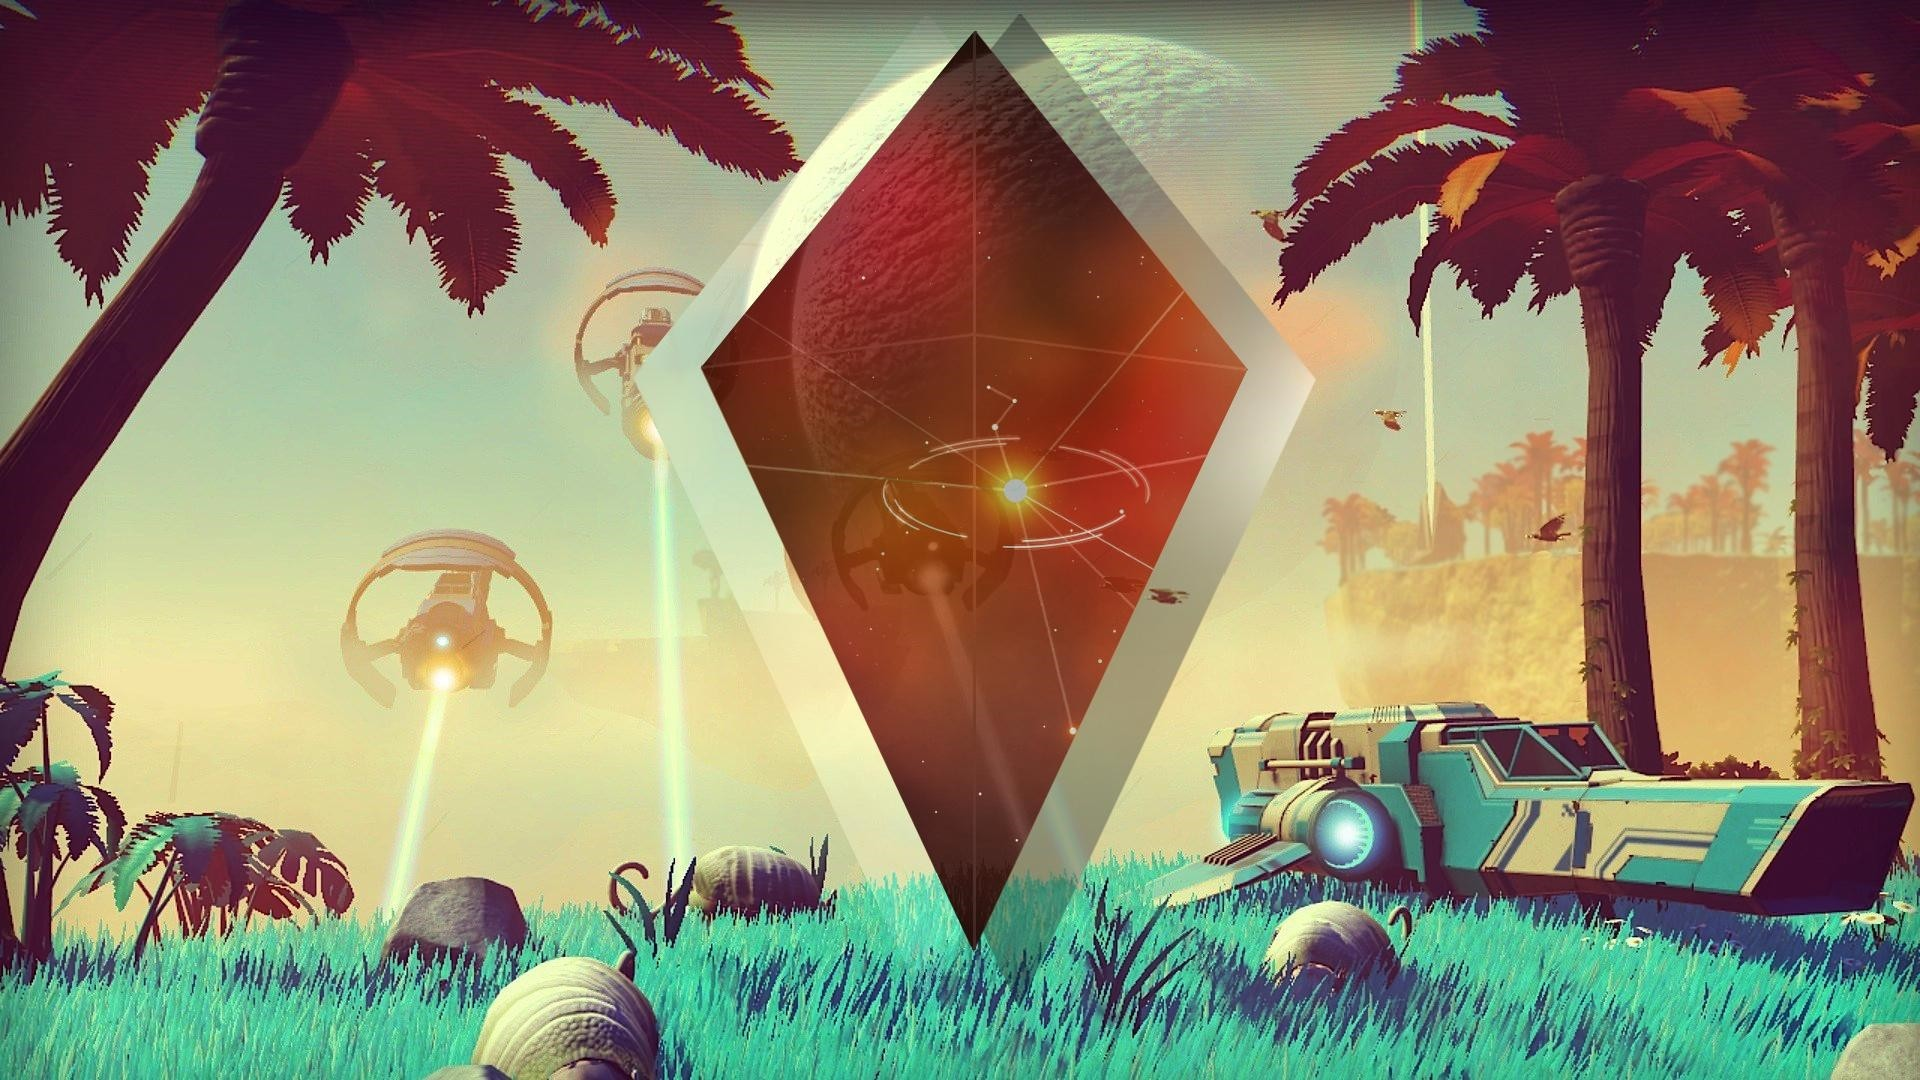 No Man's Sky Wallpaper image hd